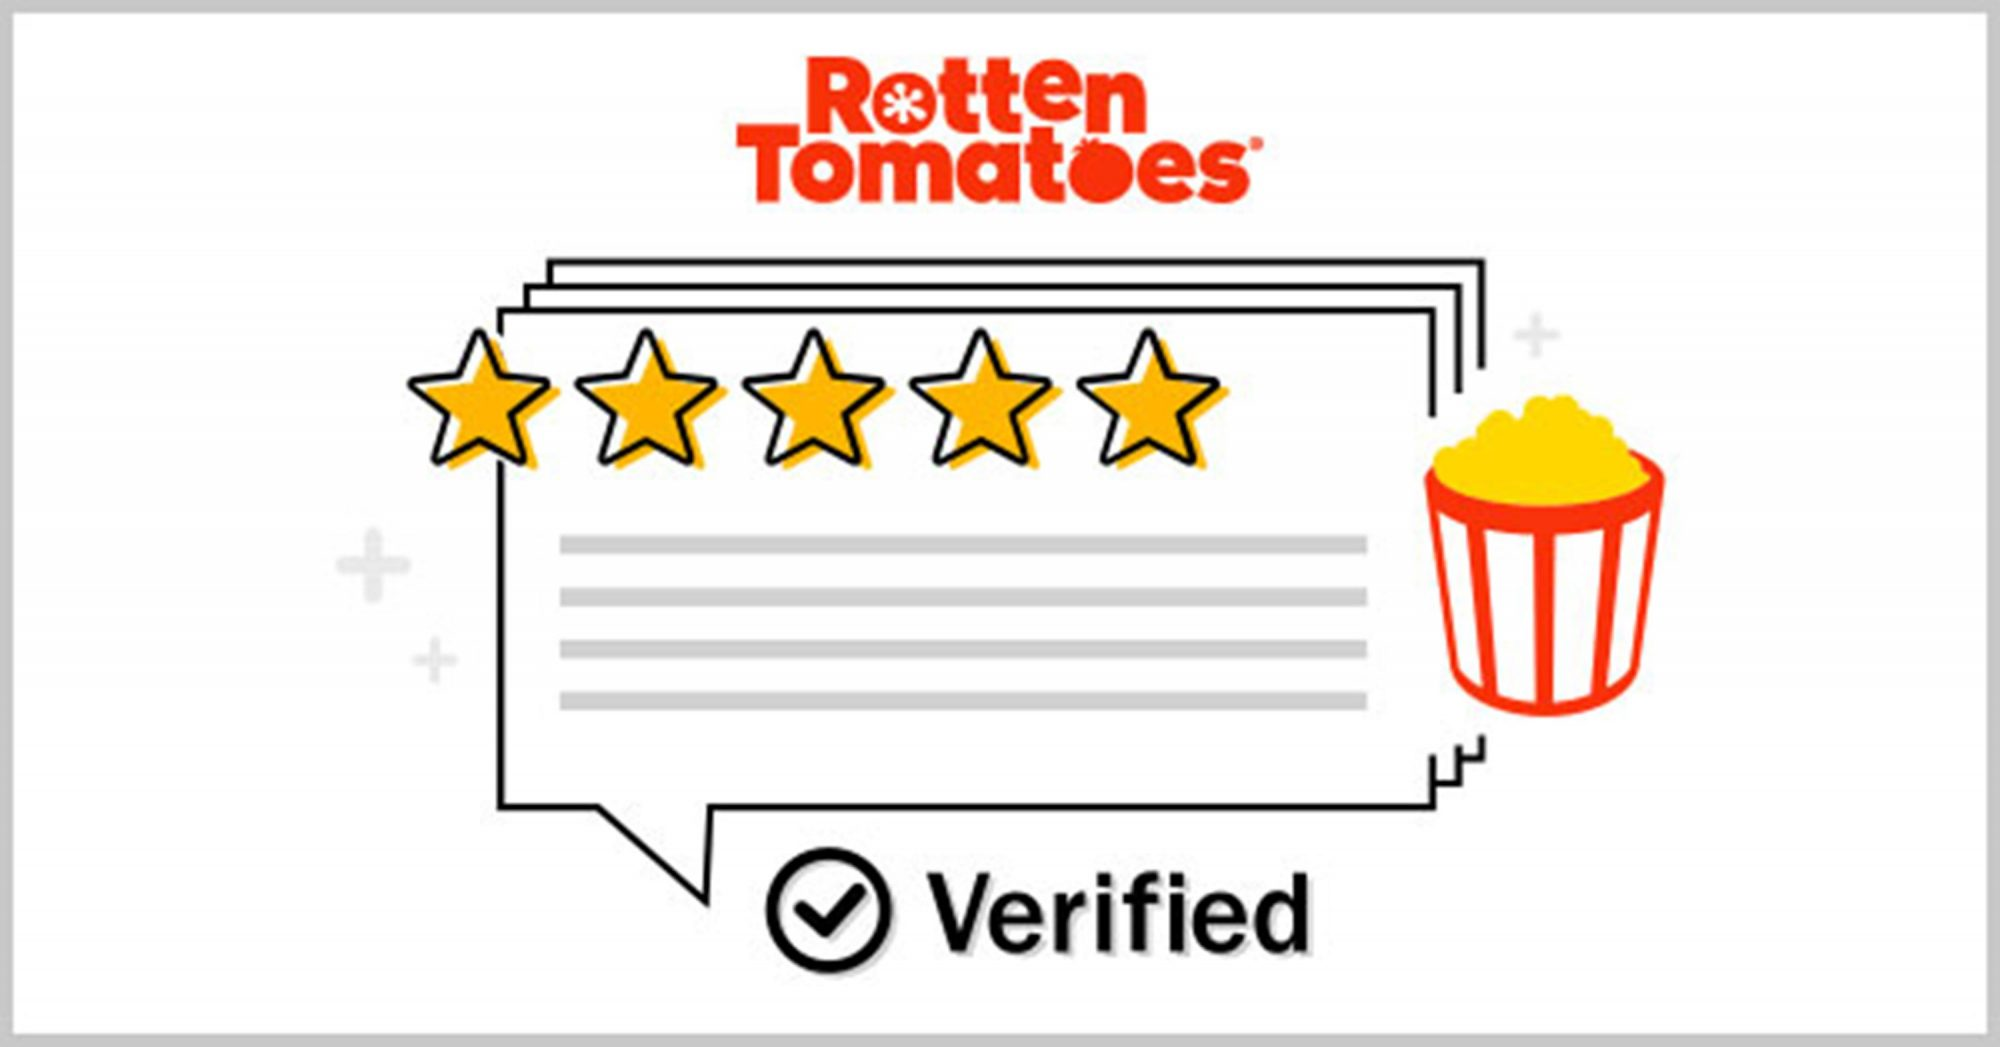 Rotten Tomatoes verified audience rankings